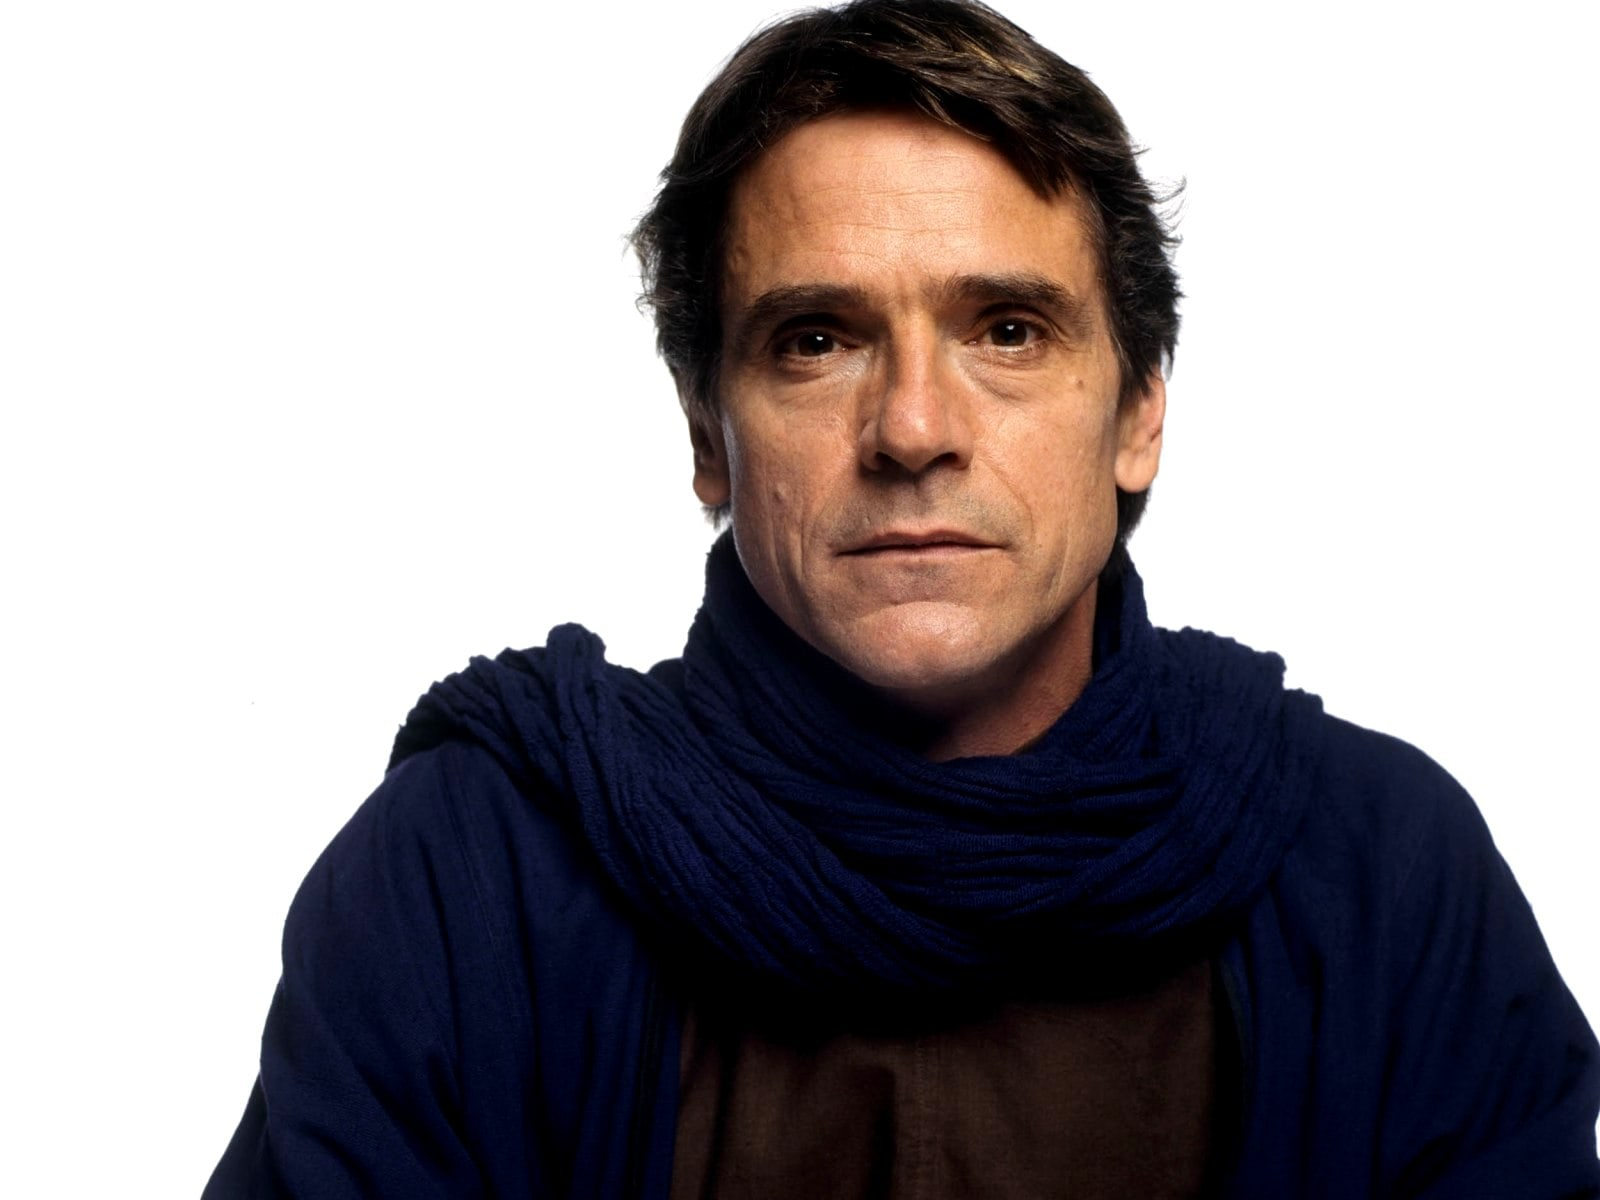 Jeremy Irons Widescreen